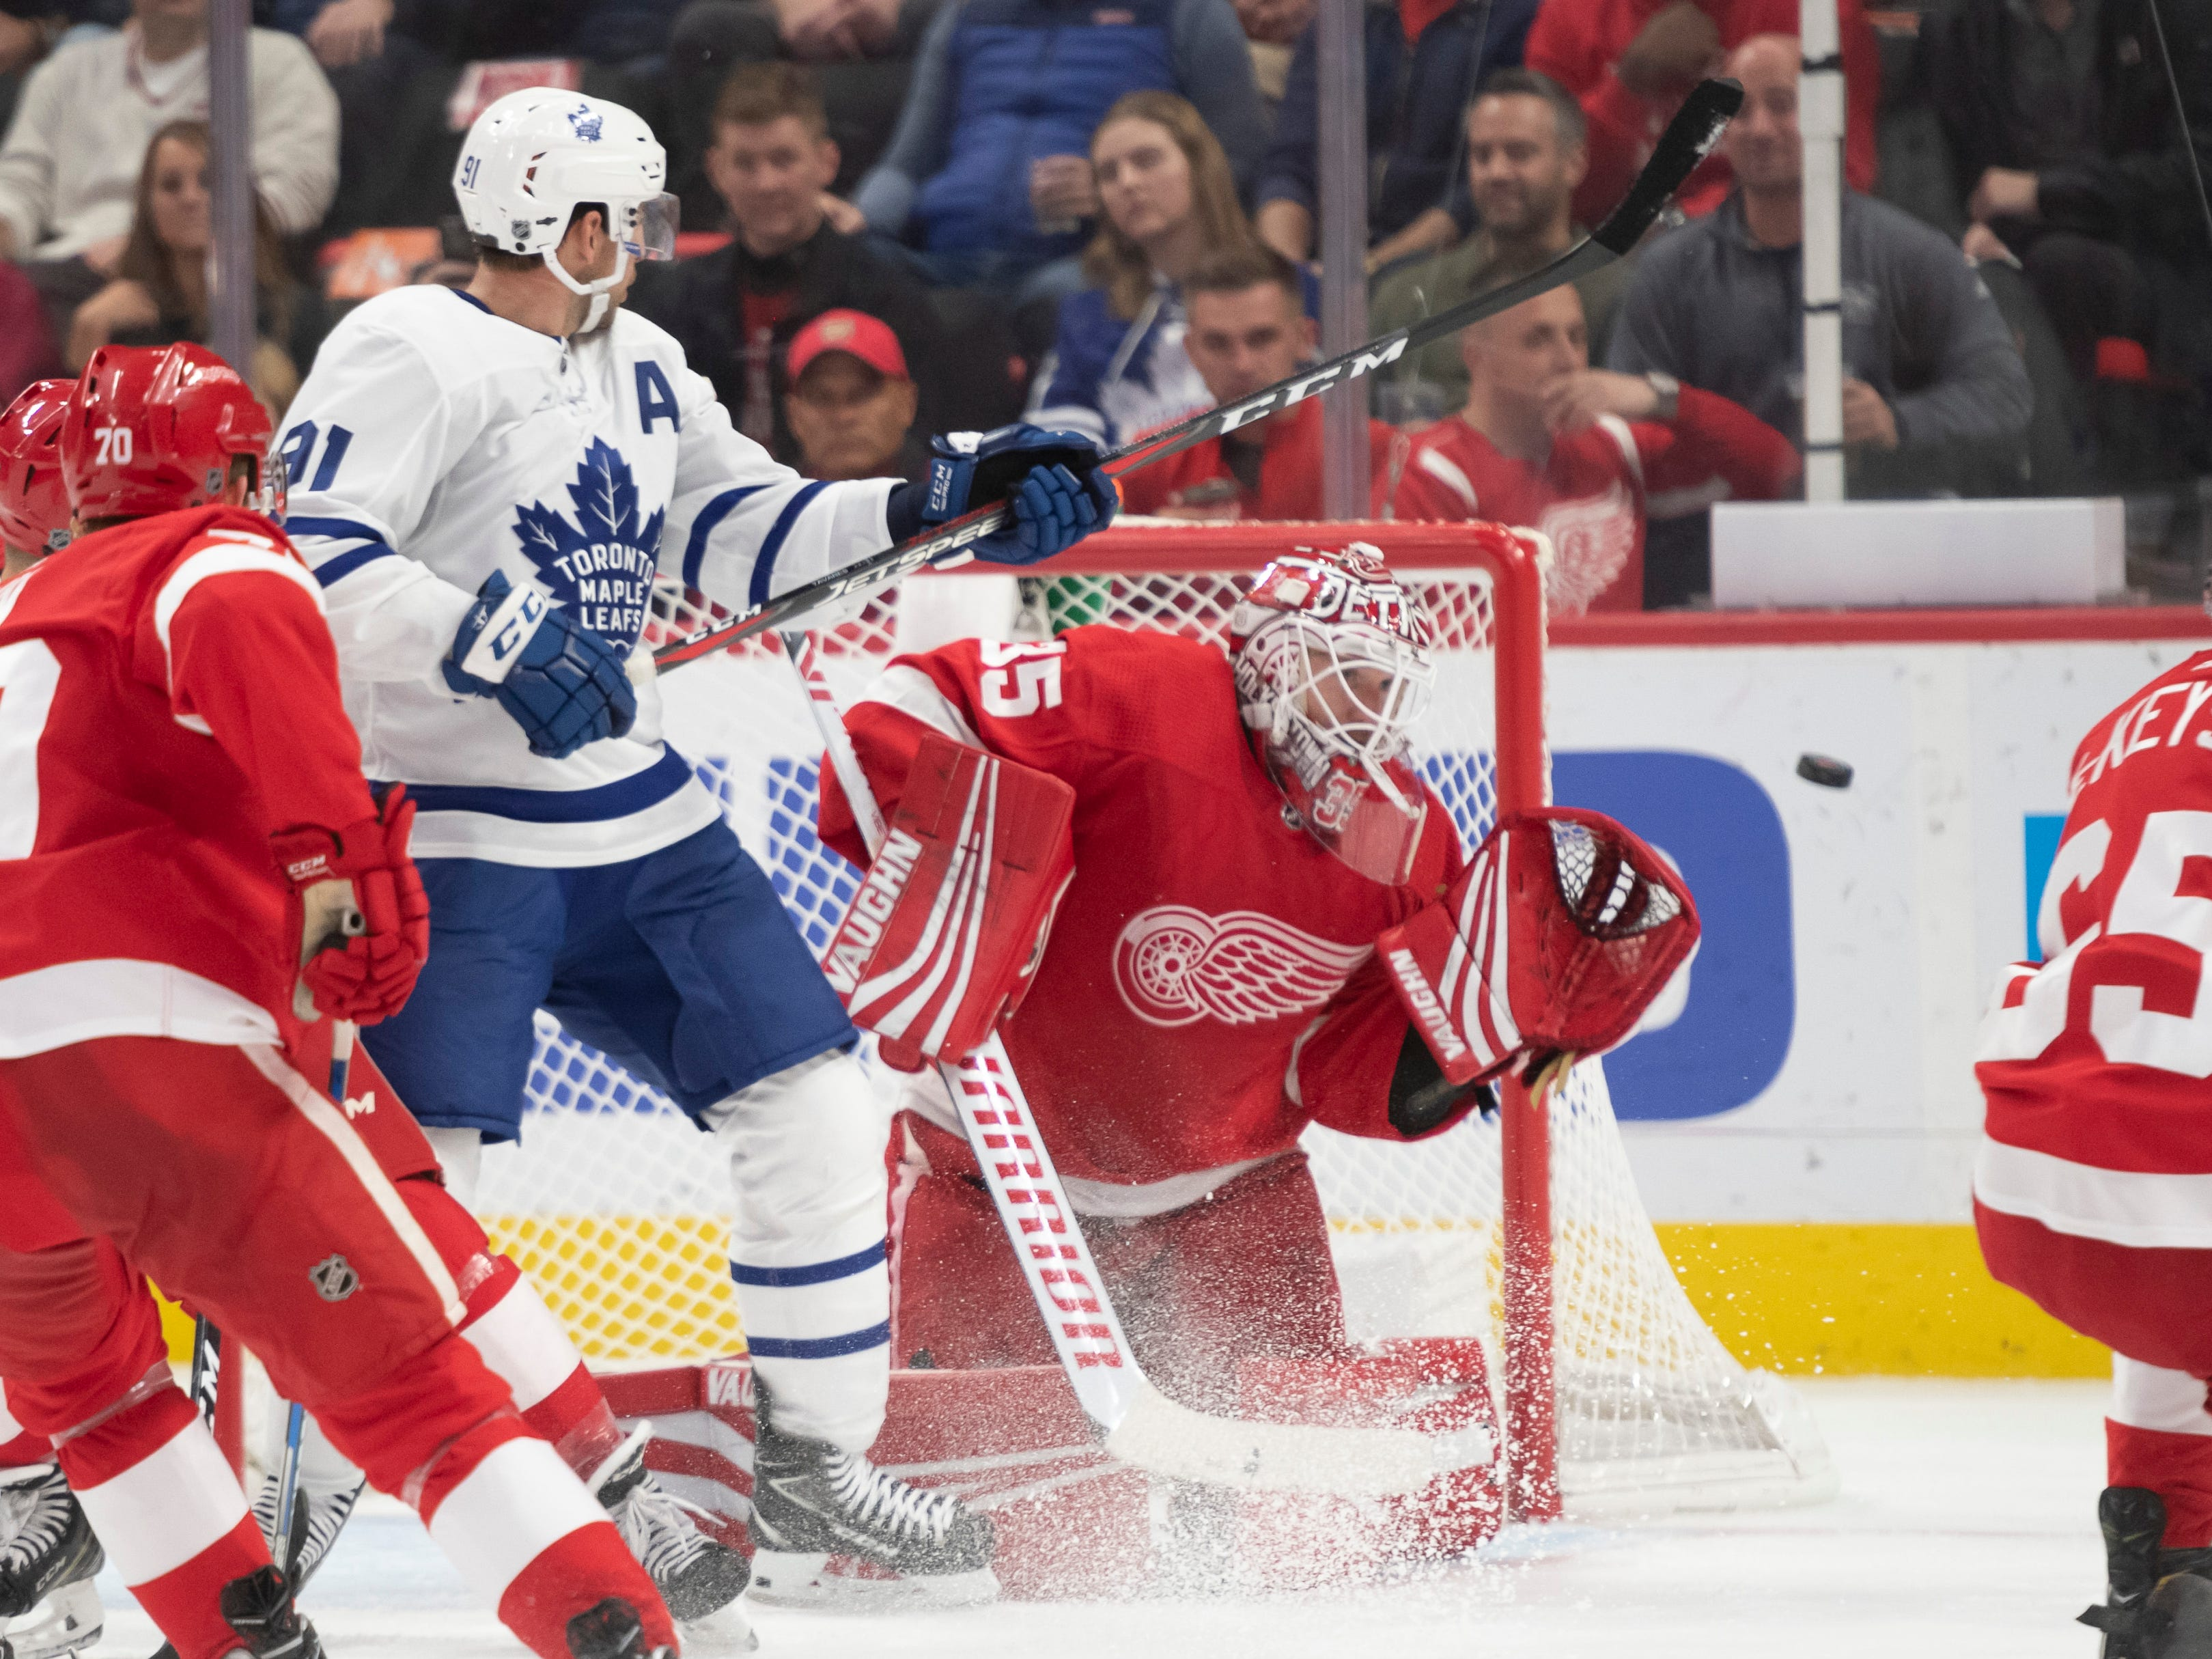 Toronto center John Tavares tries to deflect the puck past Detroit goaltender Jimmy Howard the second period.